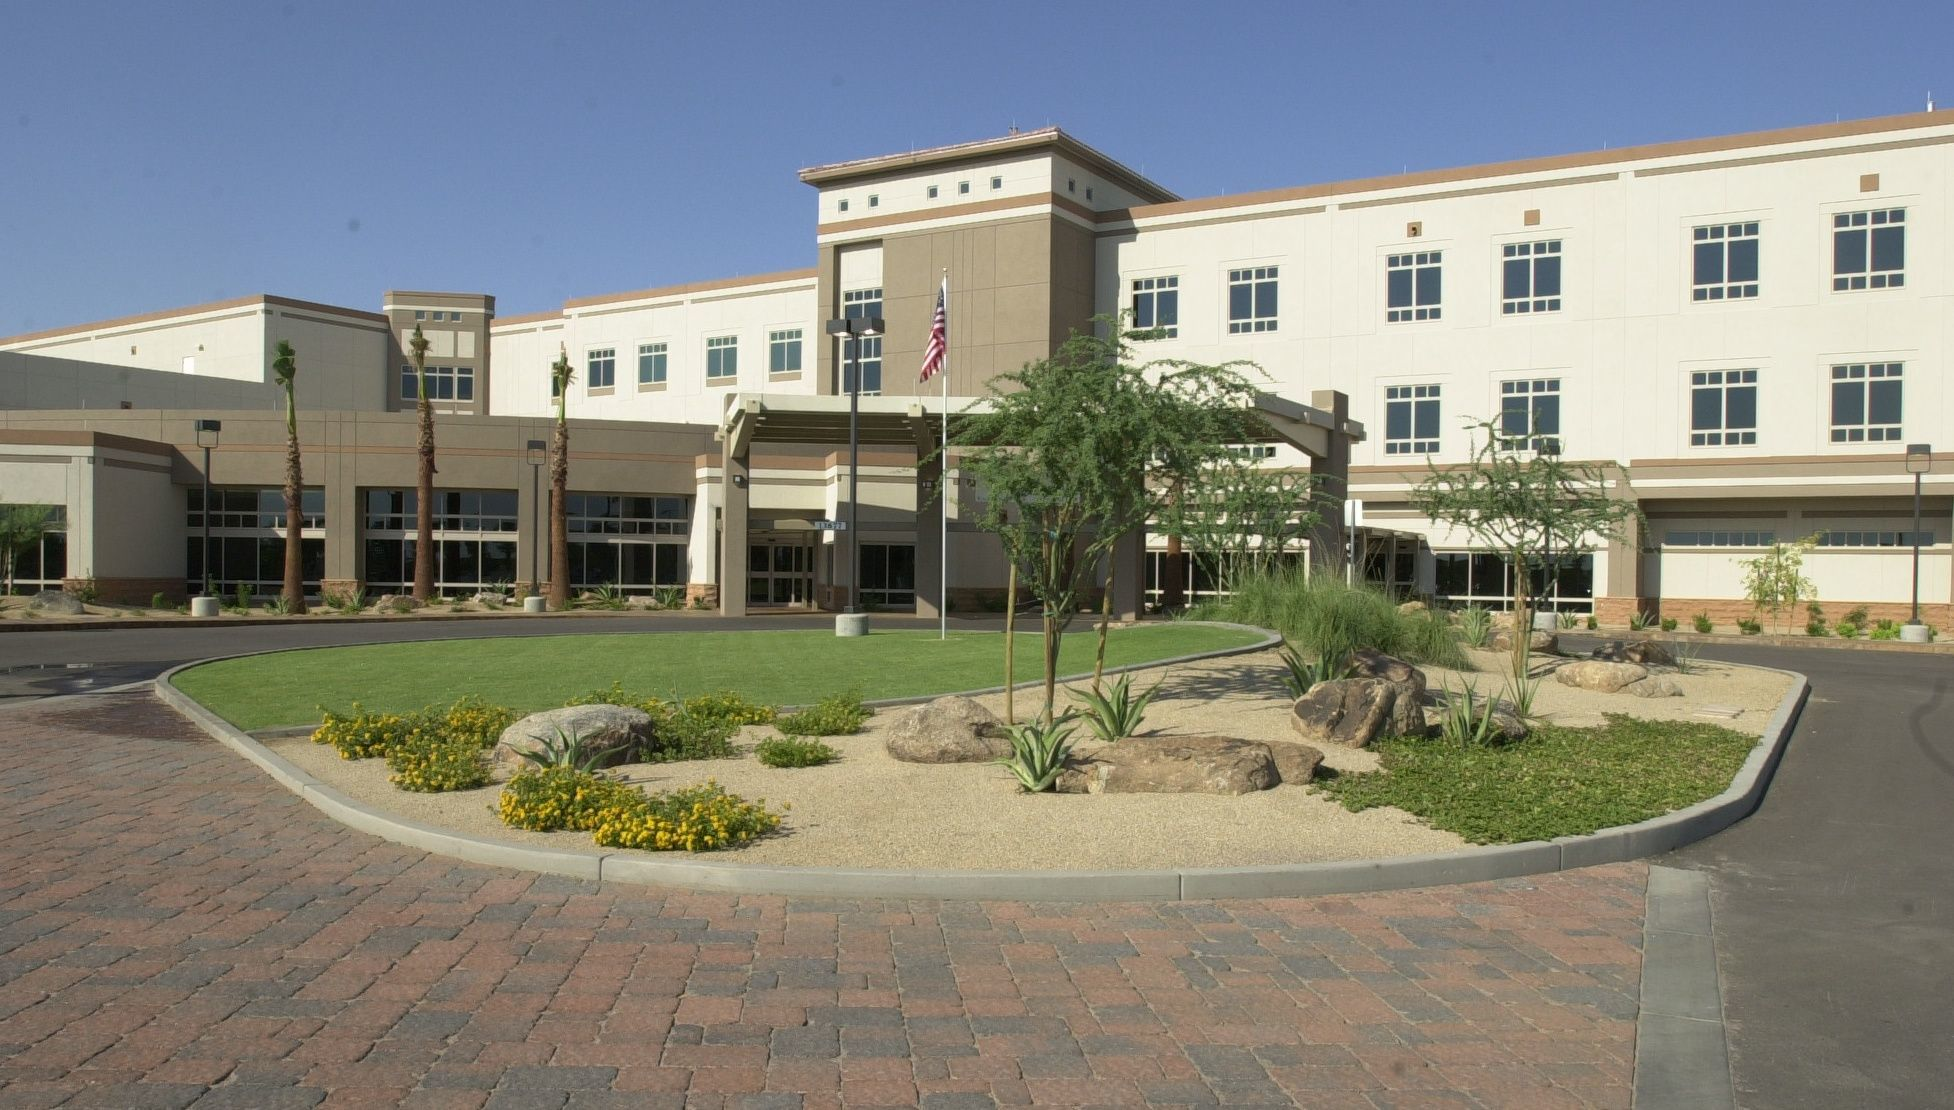 Abrazo West hospital opened in Goodyear in 2003. It's Goodyear's top employer with more than 1,000 employees.